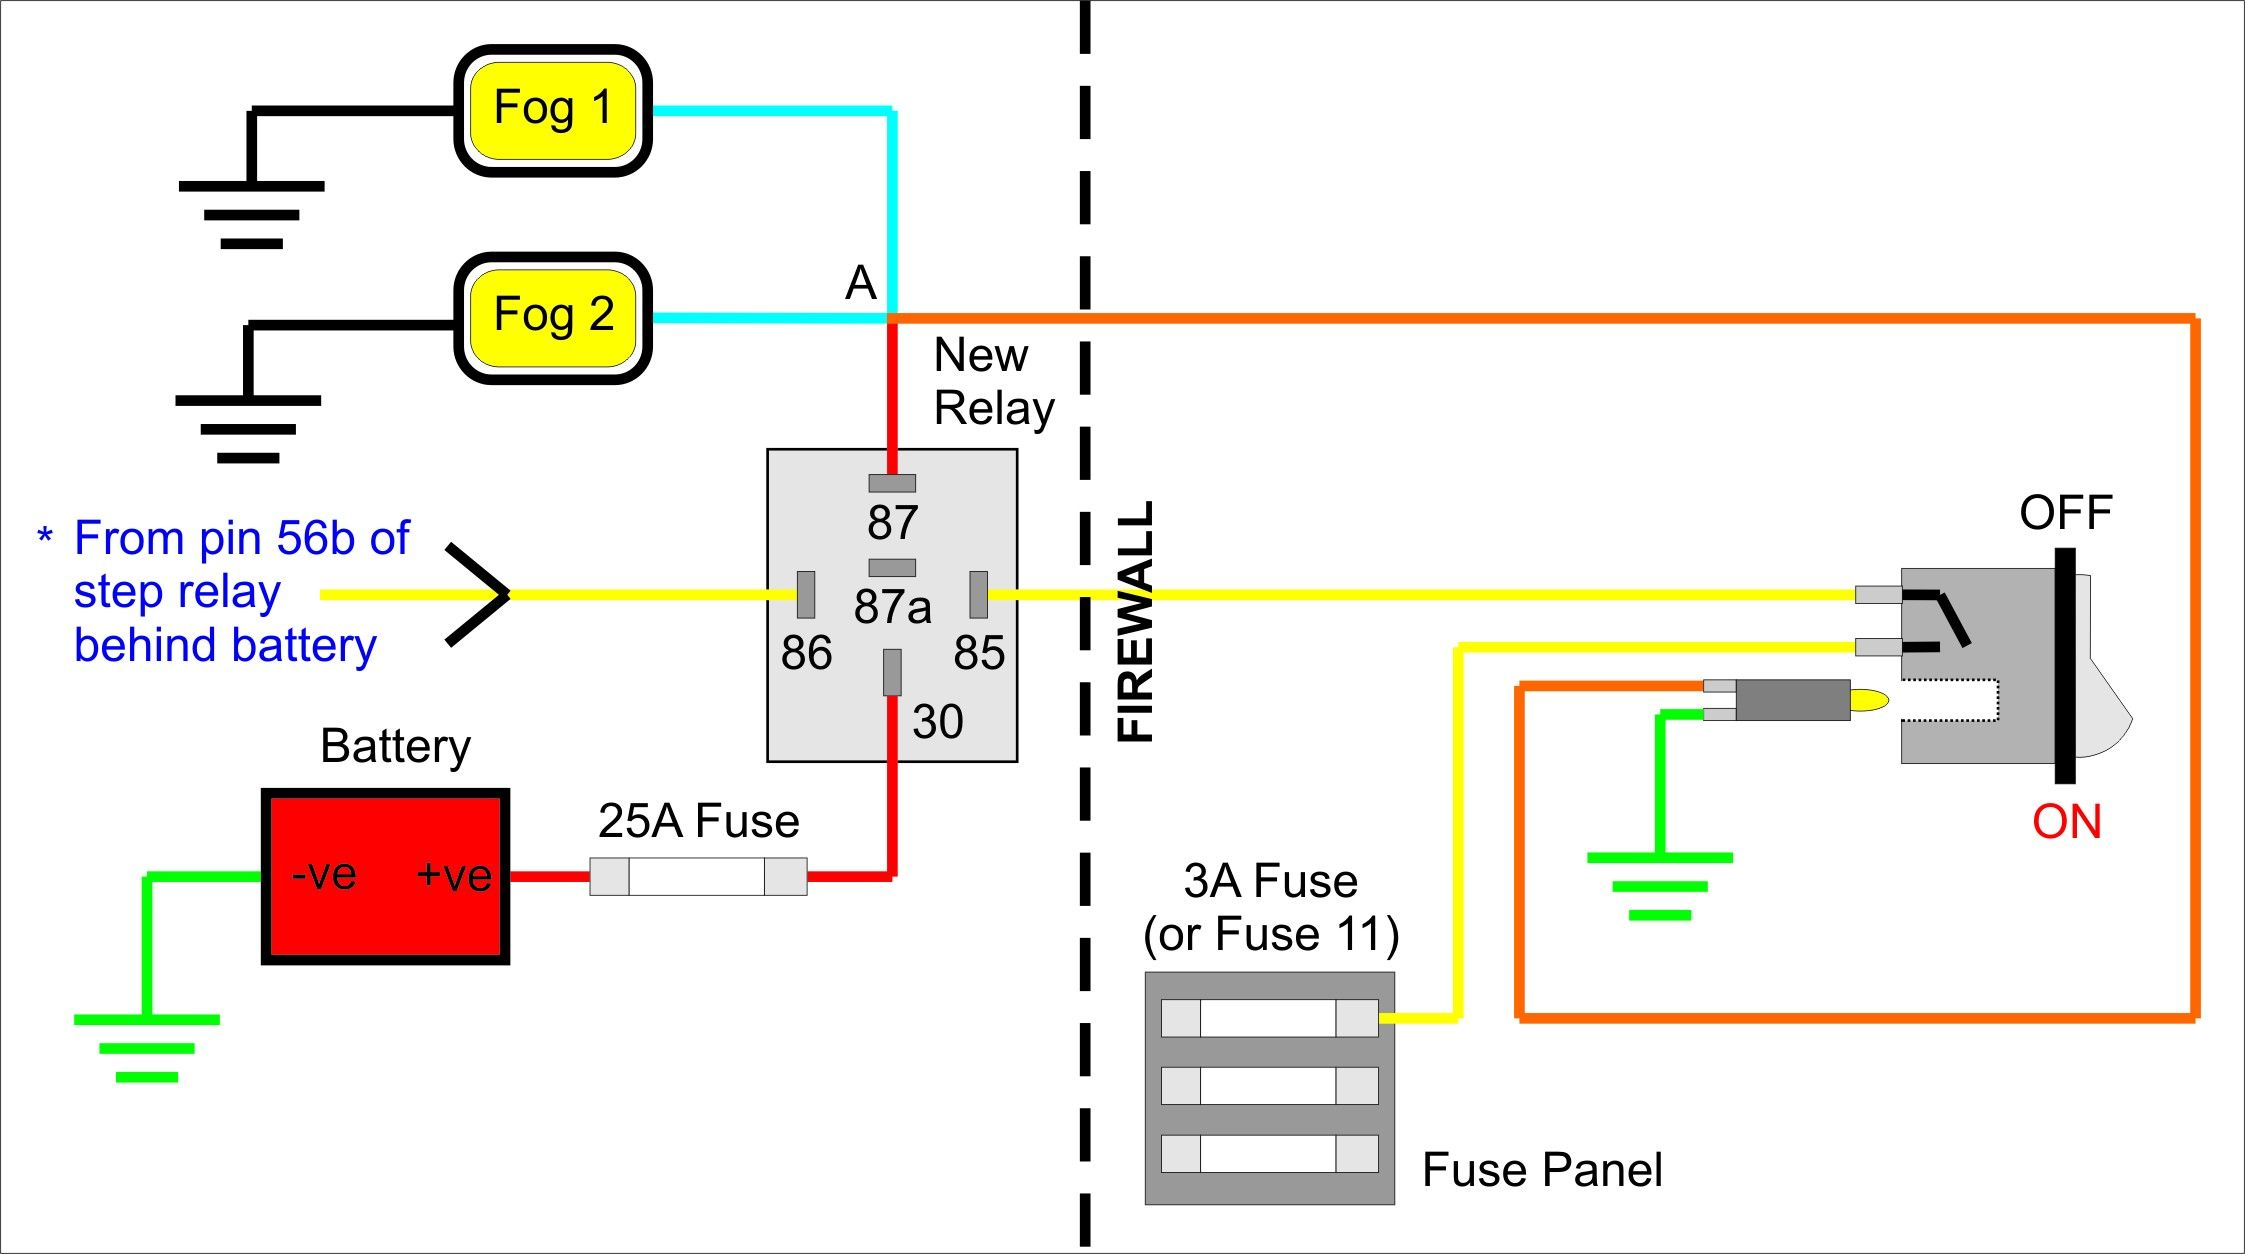 Unique Diagram For Wiring A Light Switch Diagram Wiringdiagram Diagramming Diagramm Visuals Visualisation Graphical Check More Diagram Relay Fuse Panel